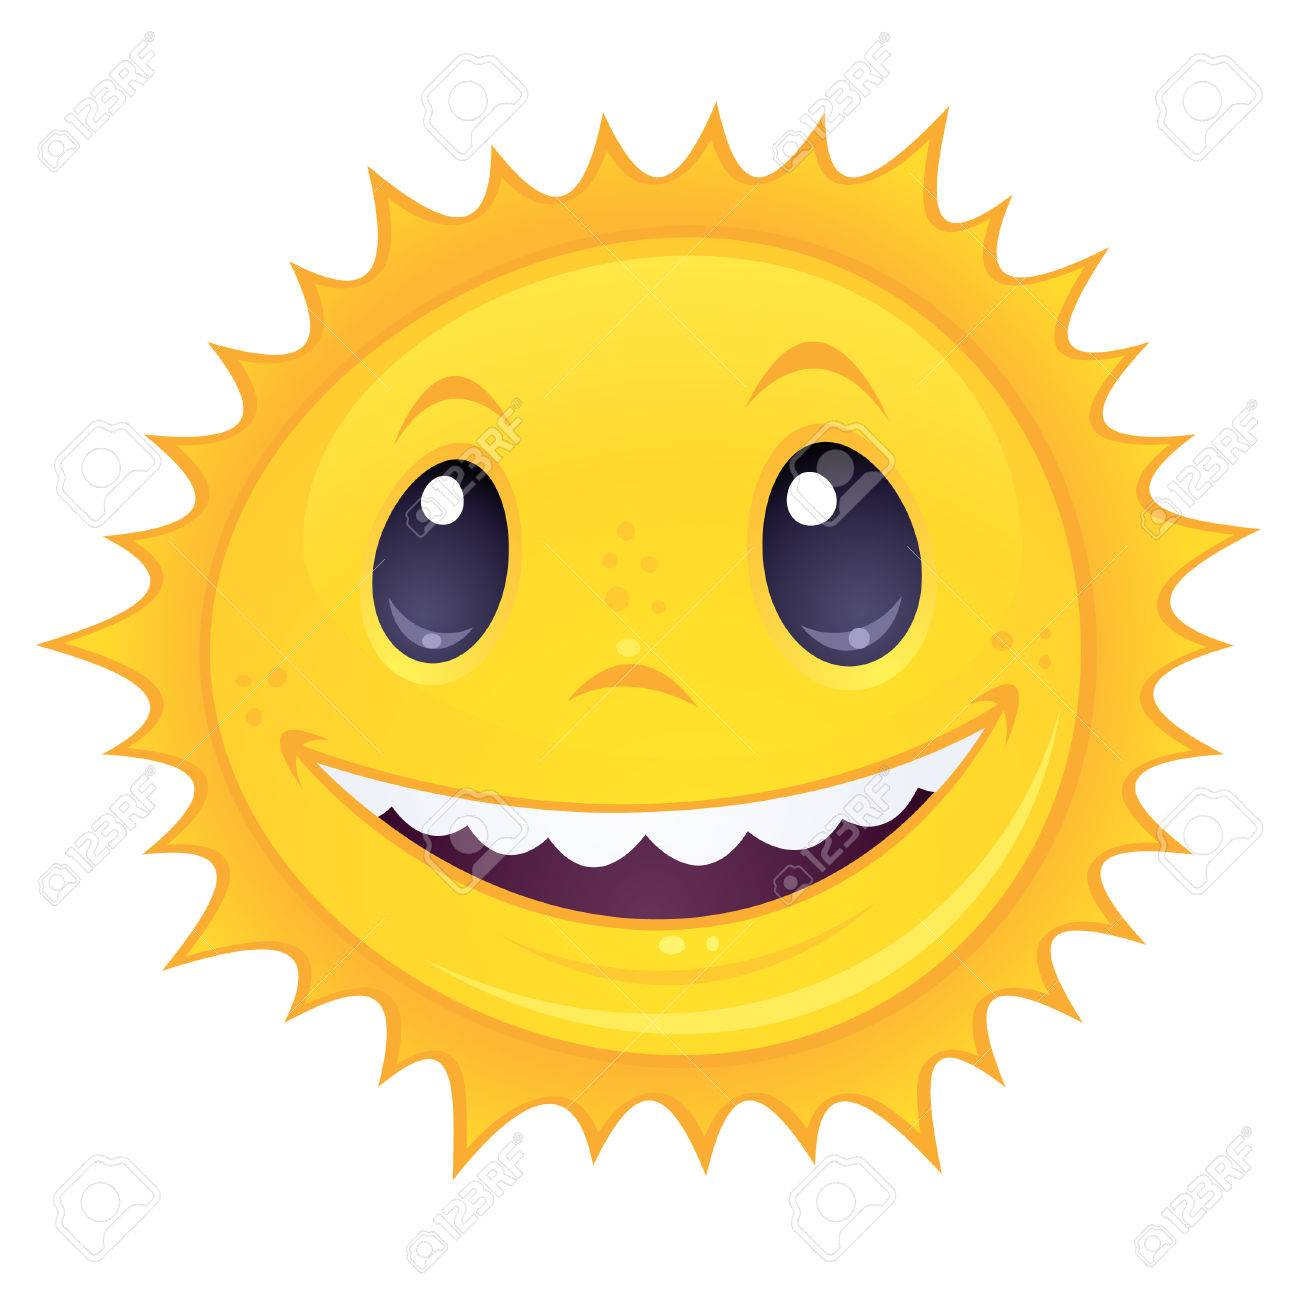 1300x1300 Cartoon Drawing Of A Happy, Smiling Sun. Great For Spring